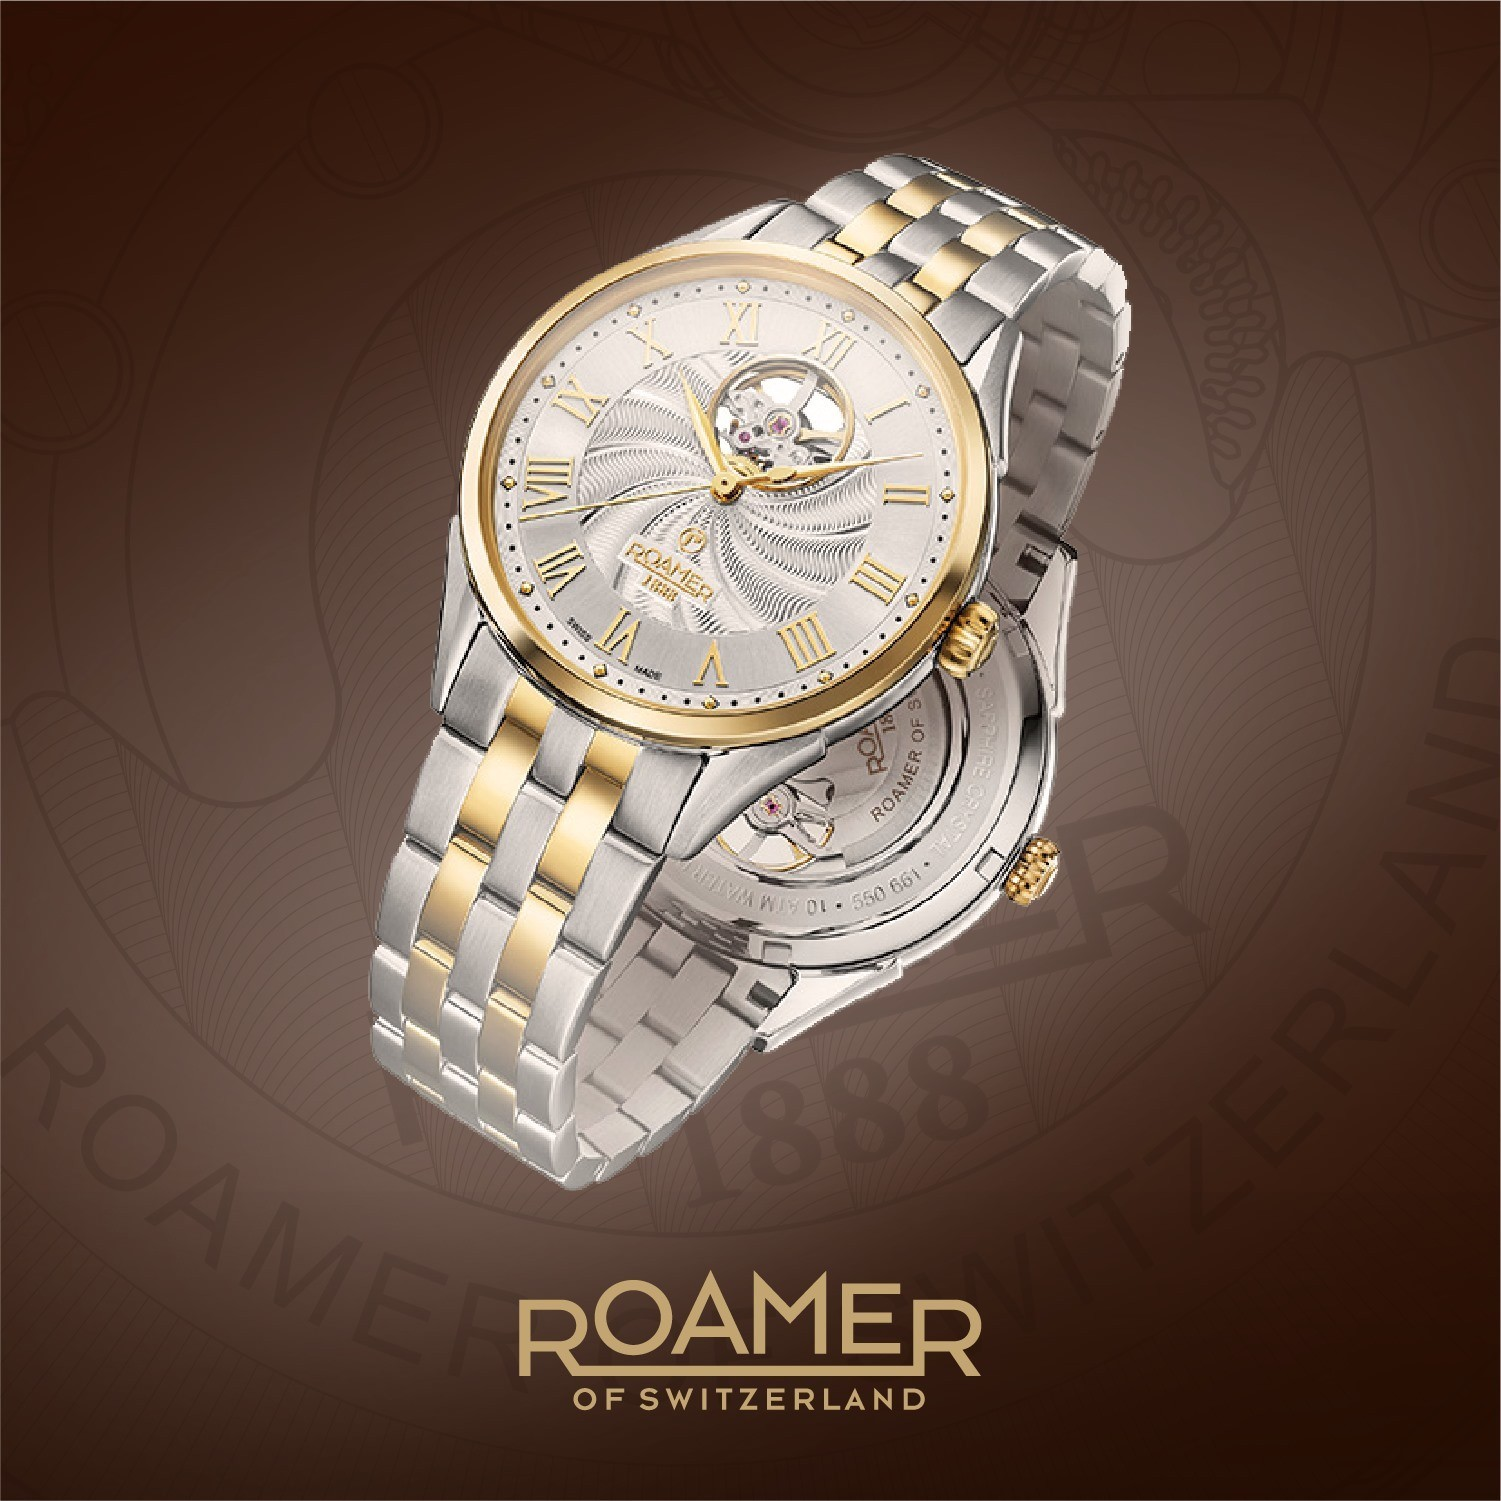 Branded Watches for Men and Women Online- Crono Qatar